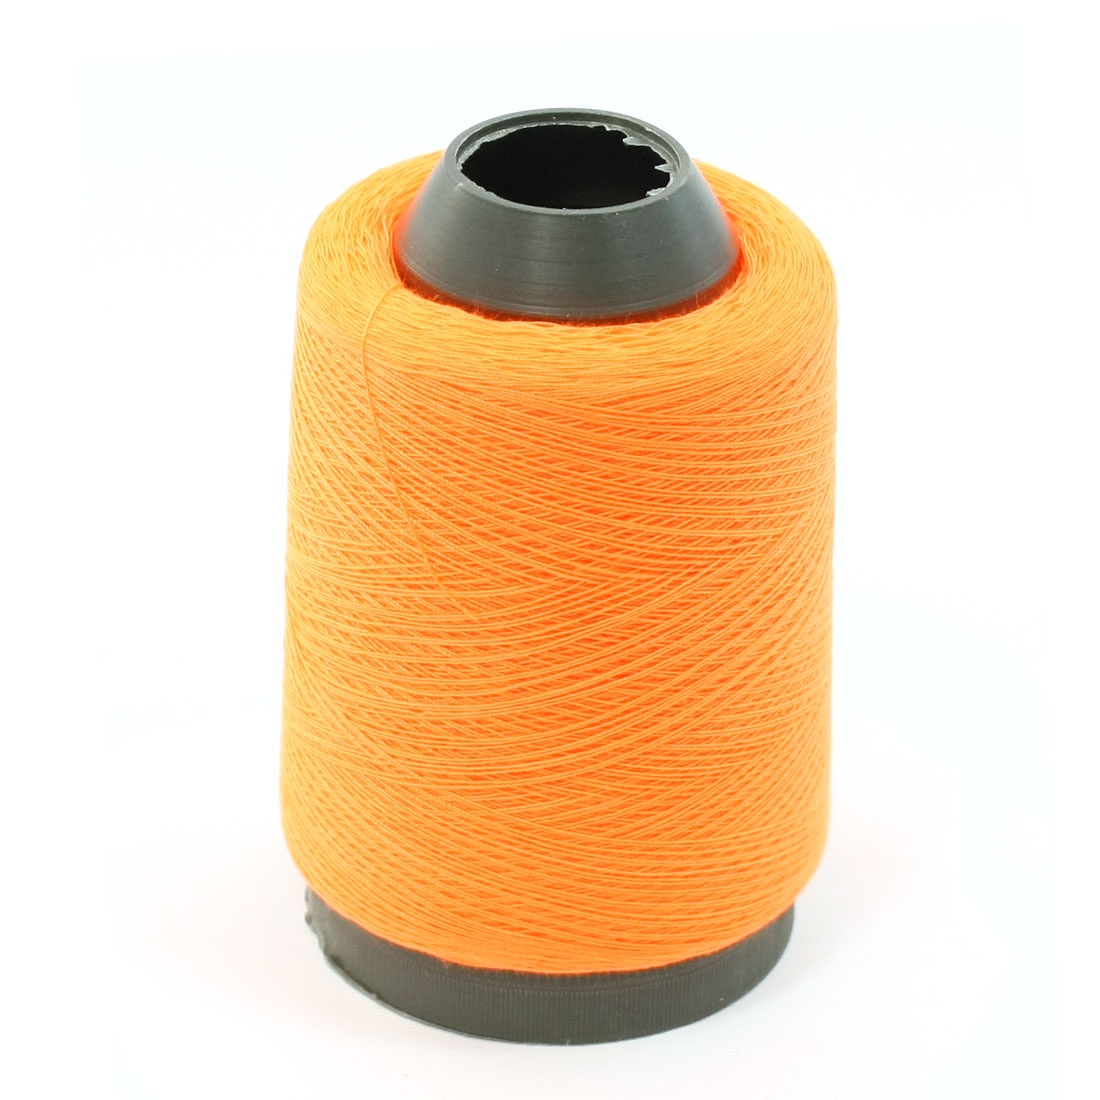 Orange Tailor Quilting Stitching Cotton Sewing Thread Spool Reel